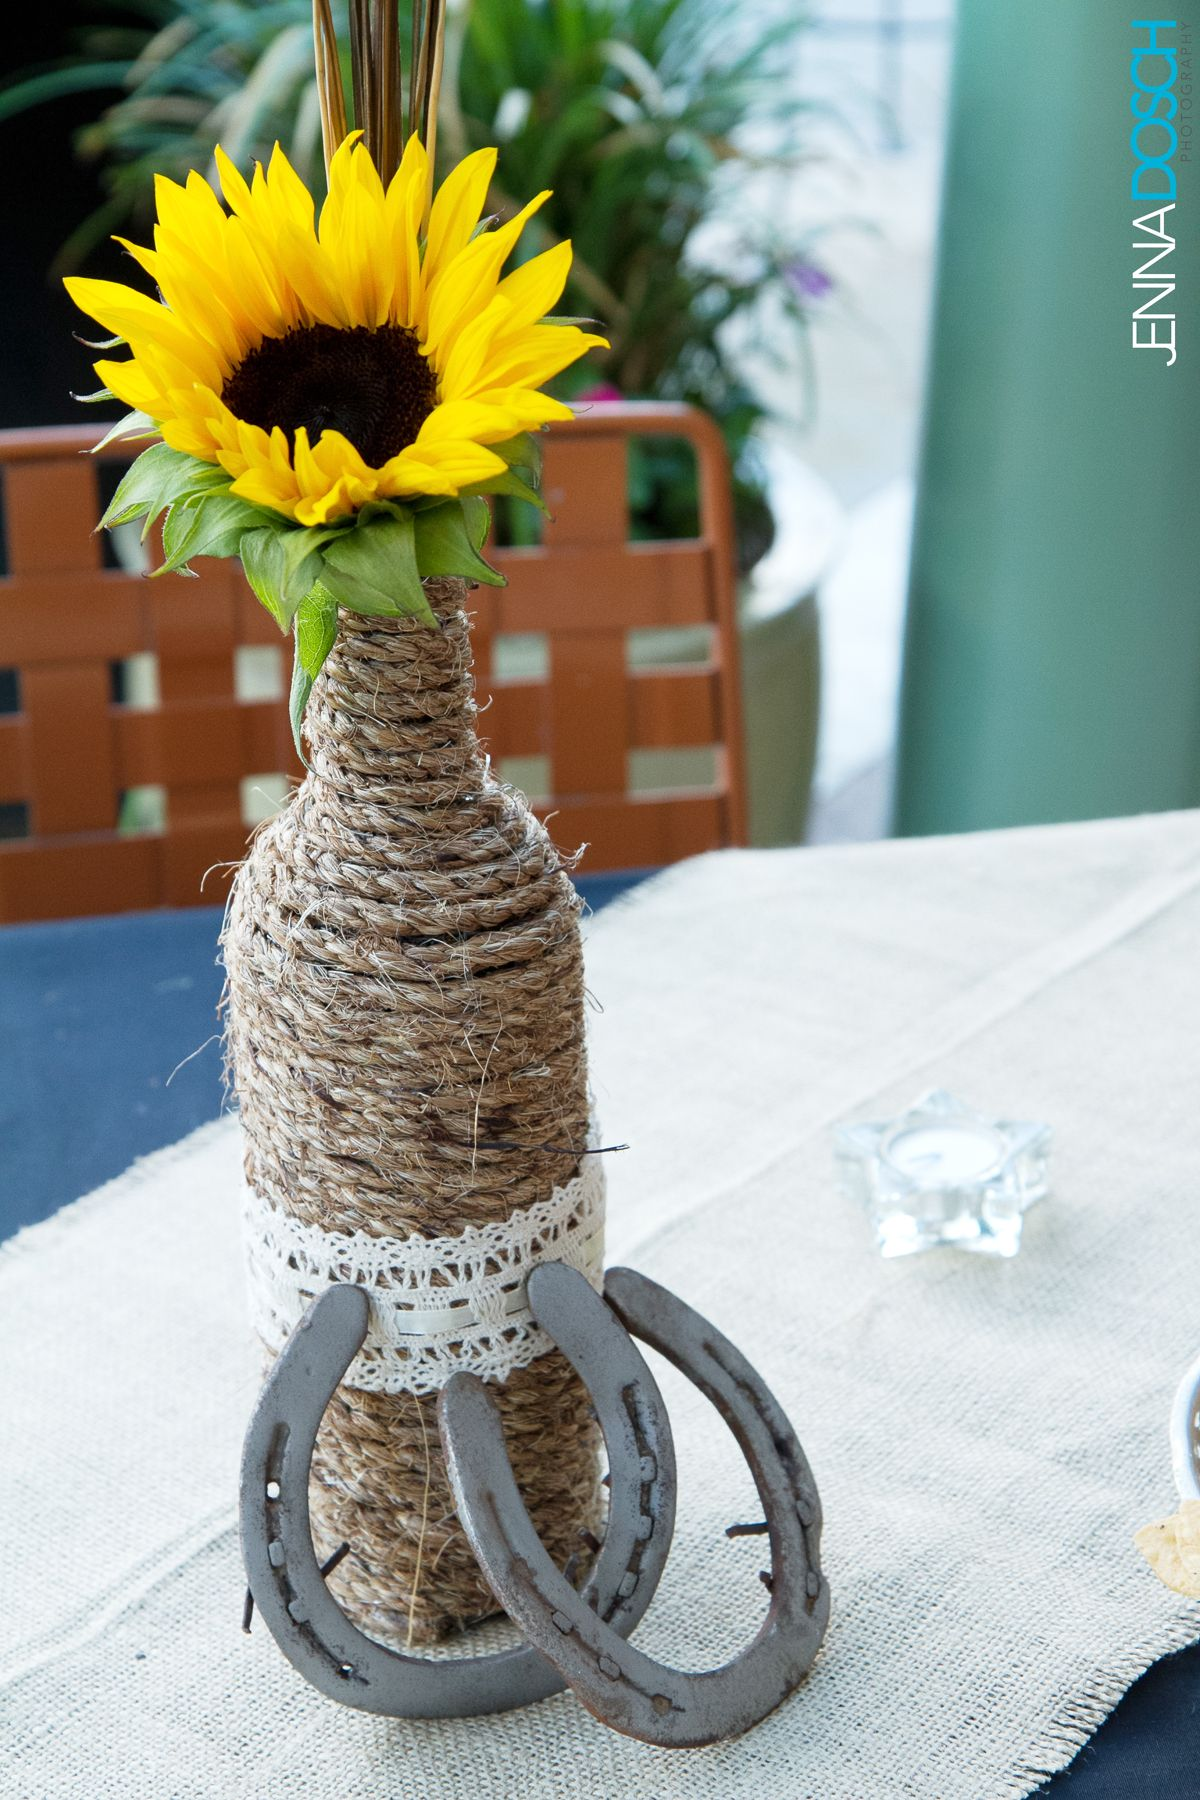 Creative floral designs with sunflowers sunny summer